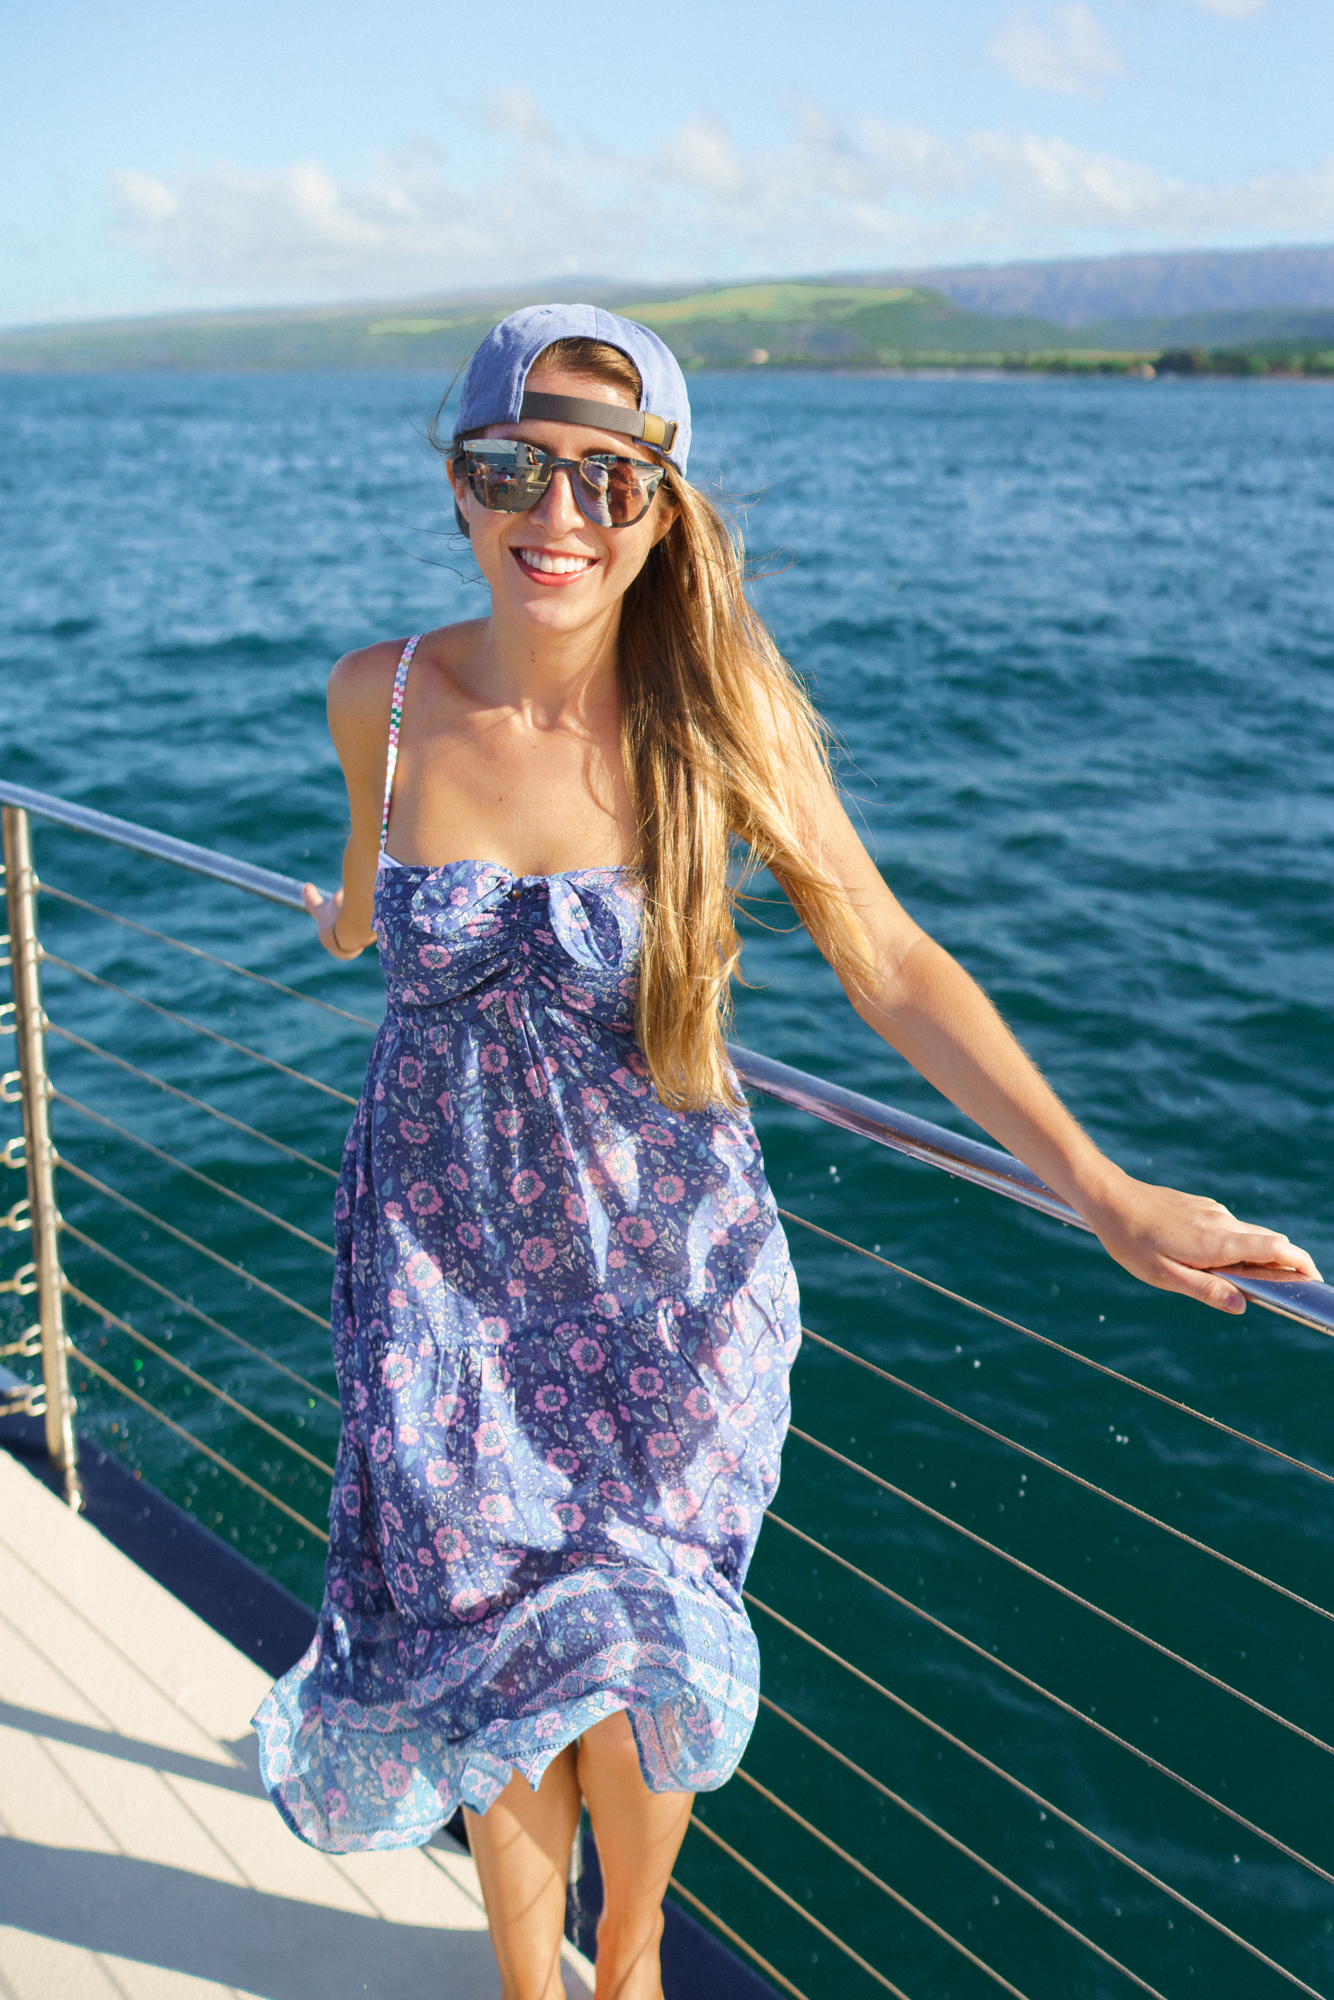 J.Crew strapless dress with mirrored sunglasses in Hawaii